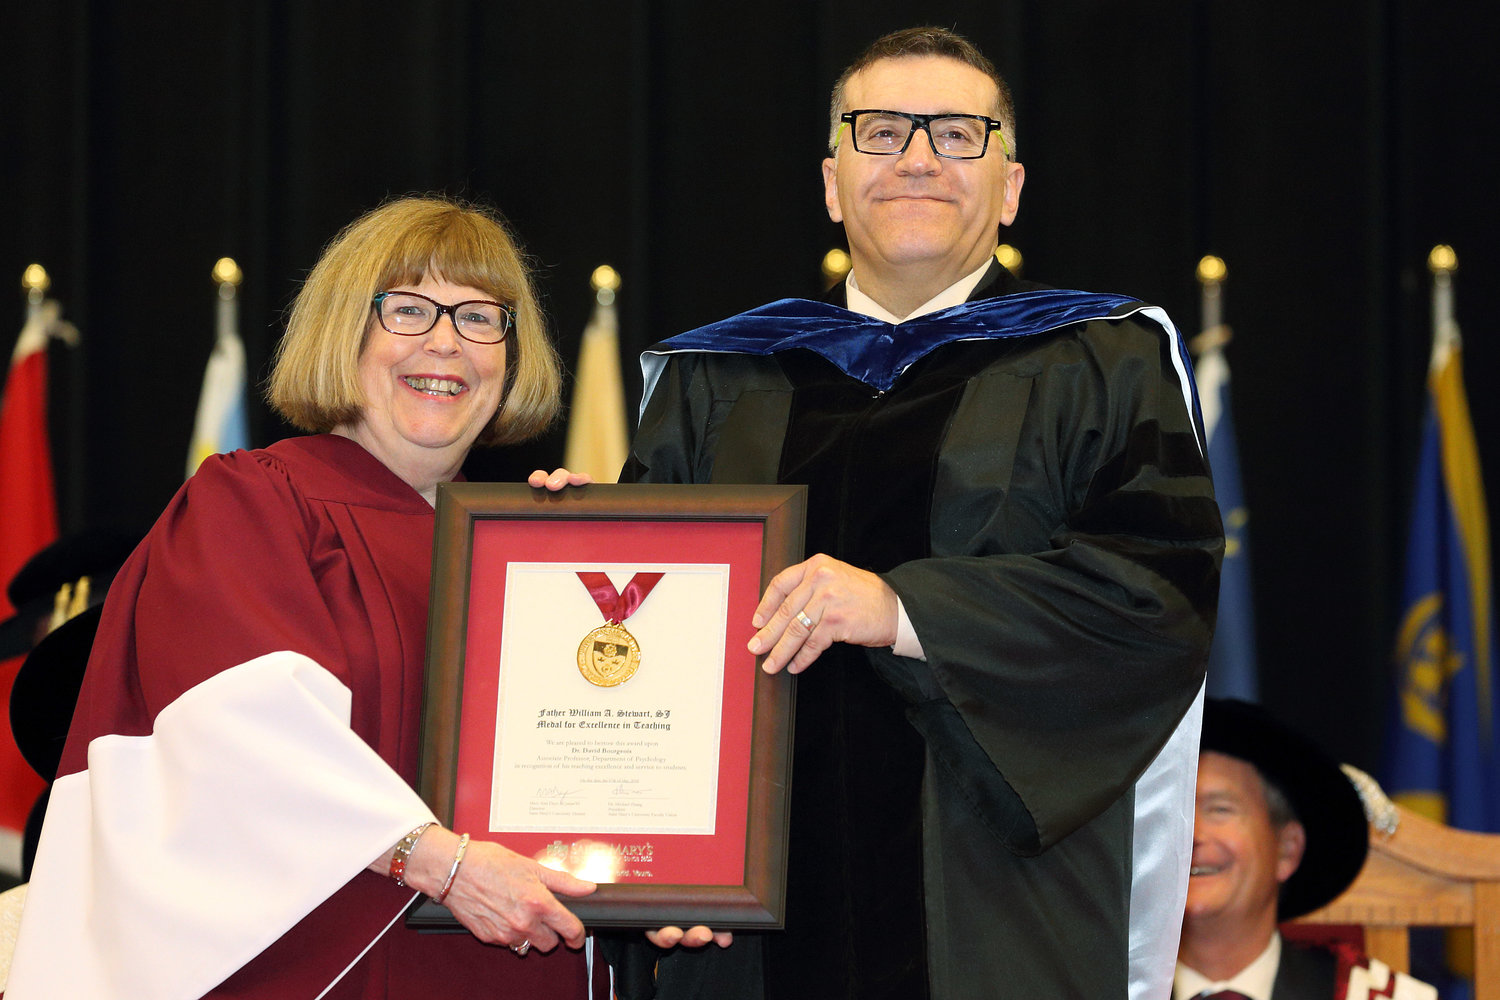 Dr. David Bourgeois receives the Father William A. Stewart Medal for Excellence in Teaching from Mary-Evelyn Ternan (BA'69, BEd'70, MEd'88), Past President of the Saint Mary's Alumni Association